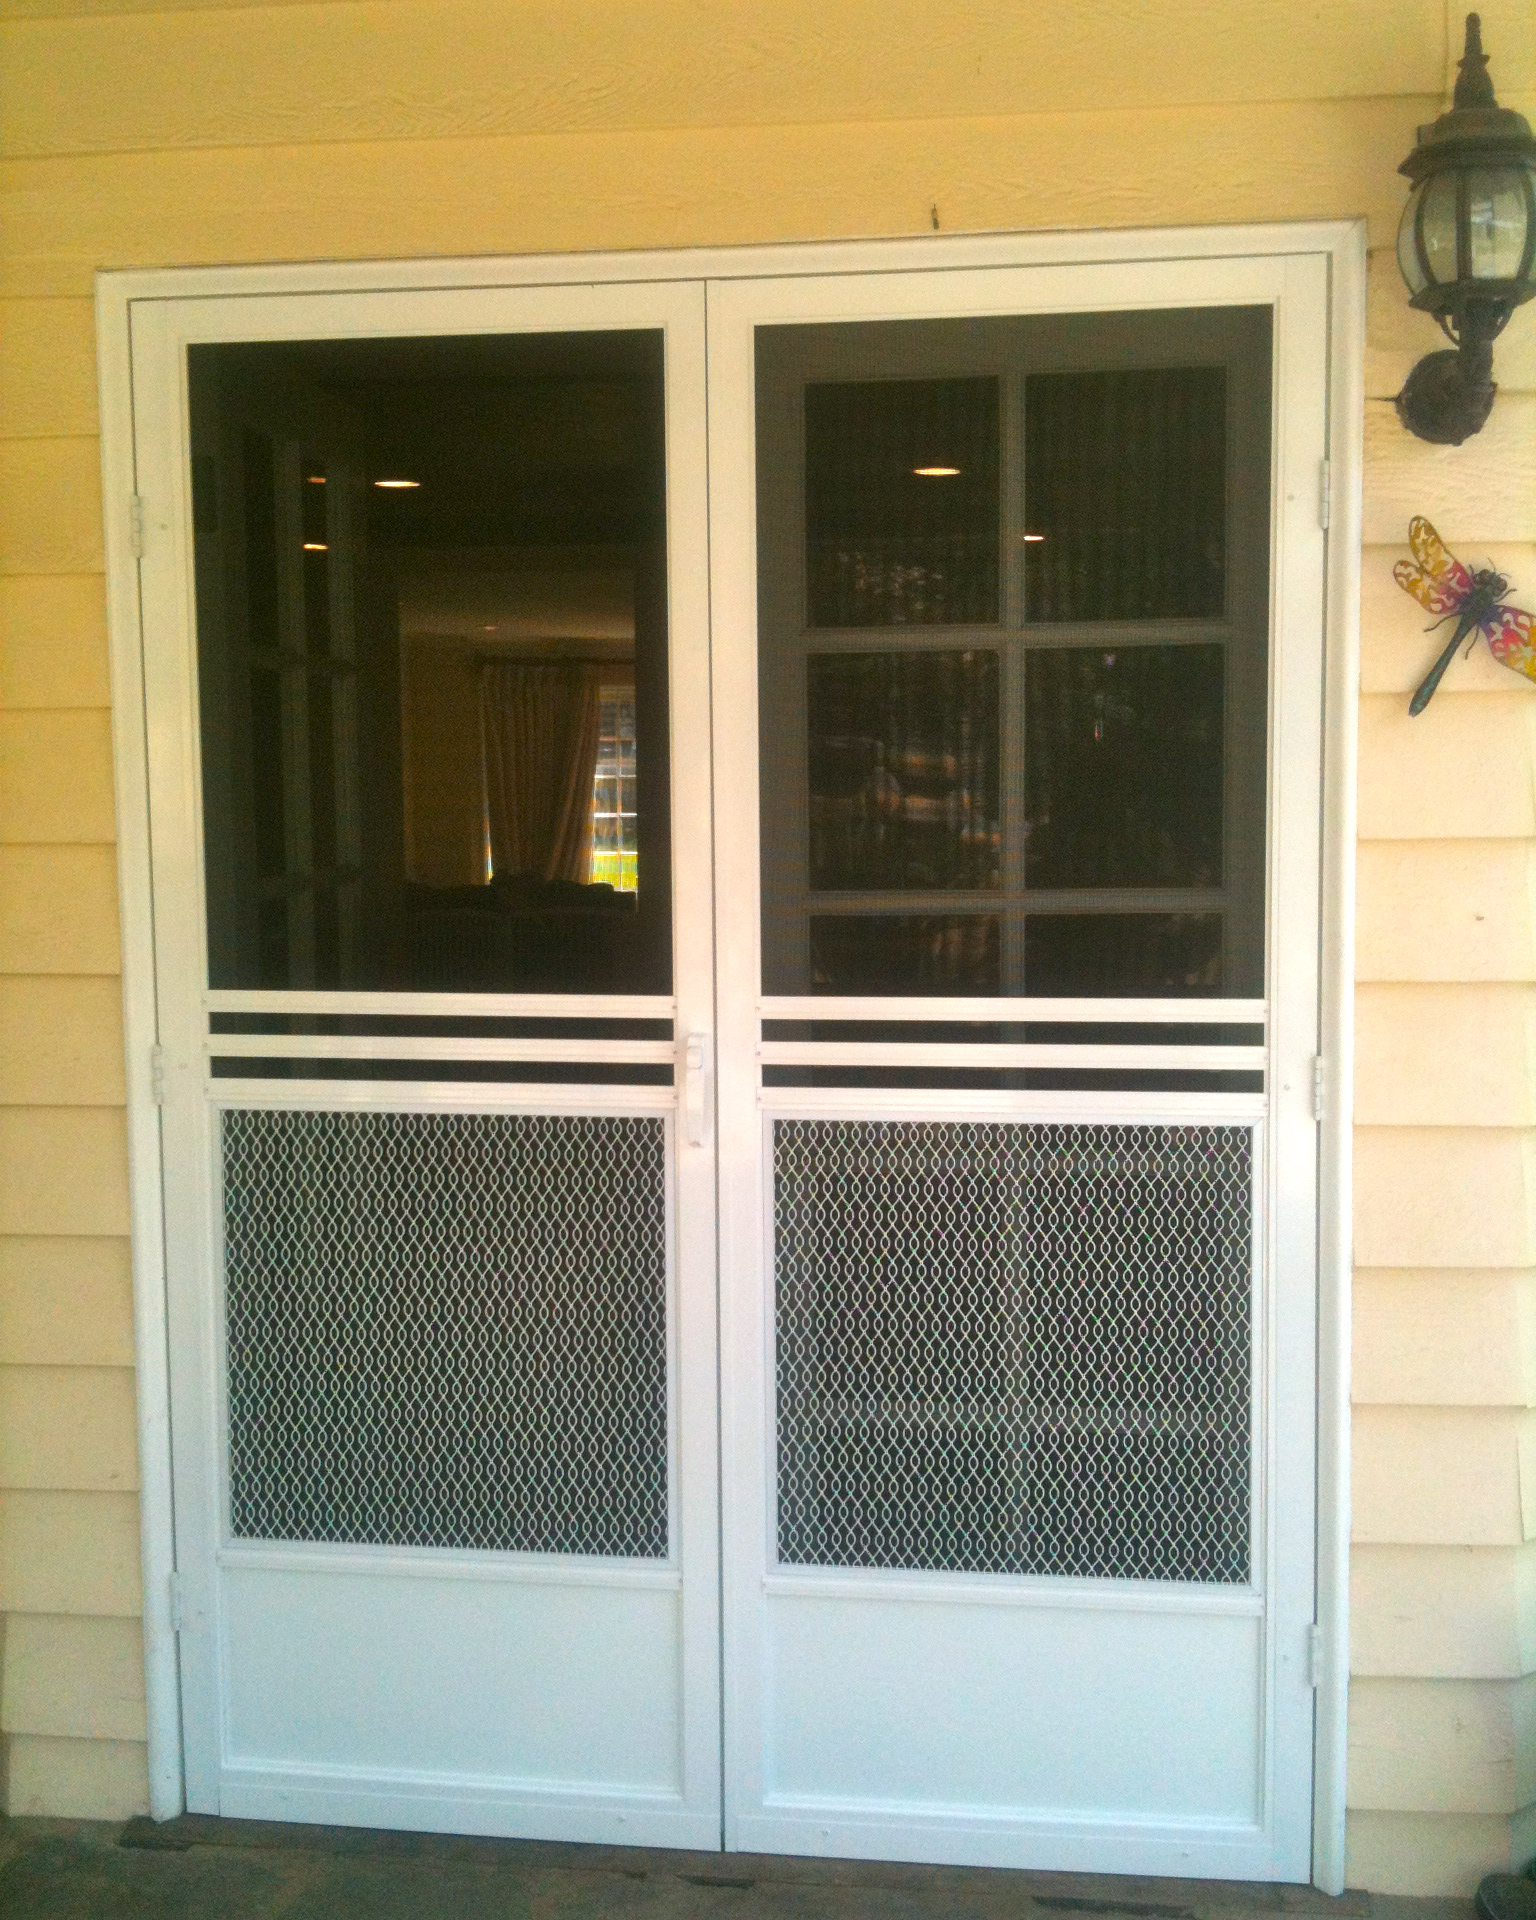 specialties are carolinas windows single window screen post necessary and storm door replacement doors